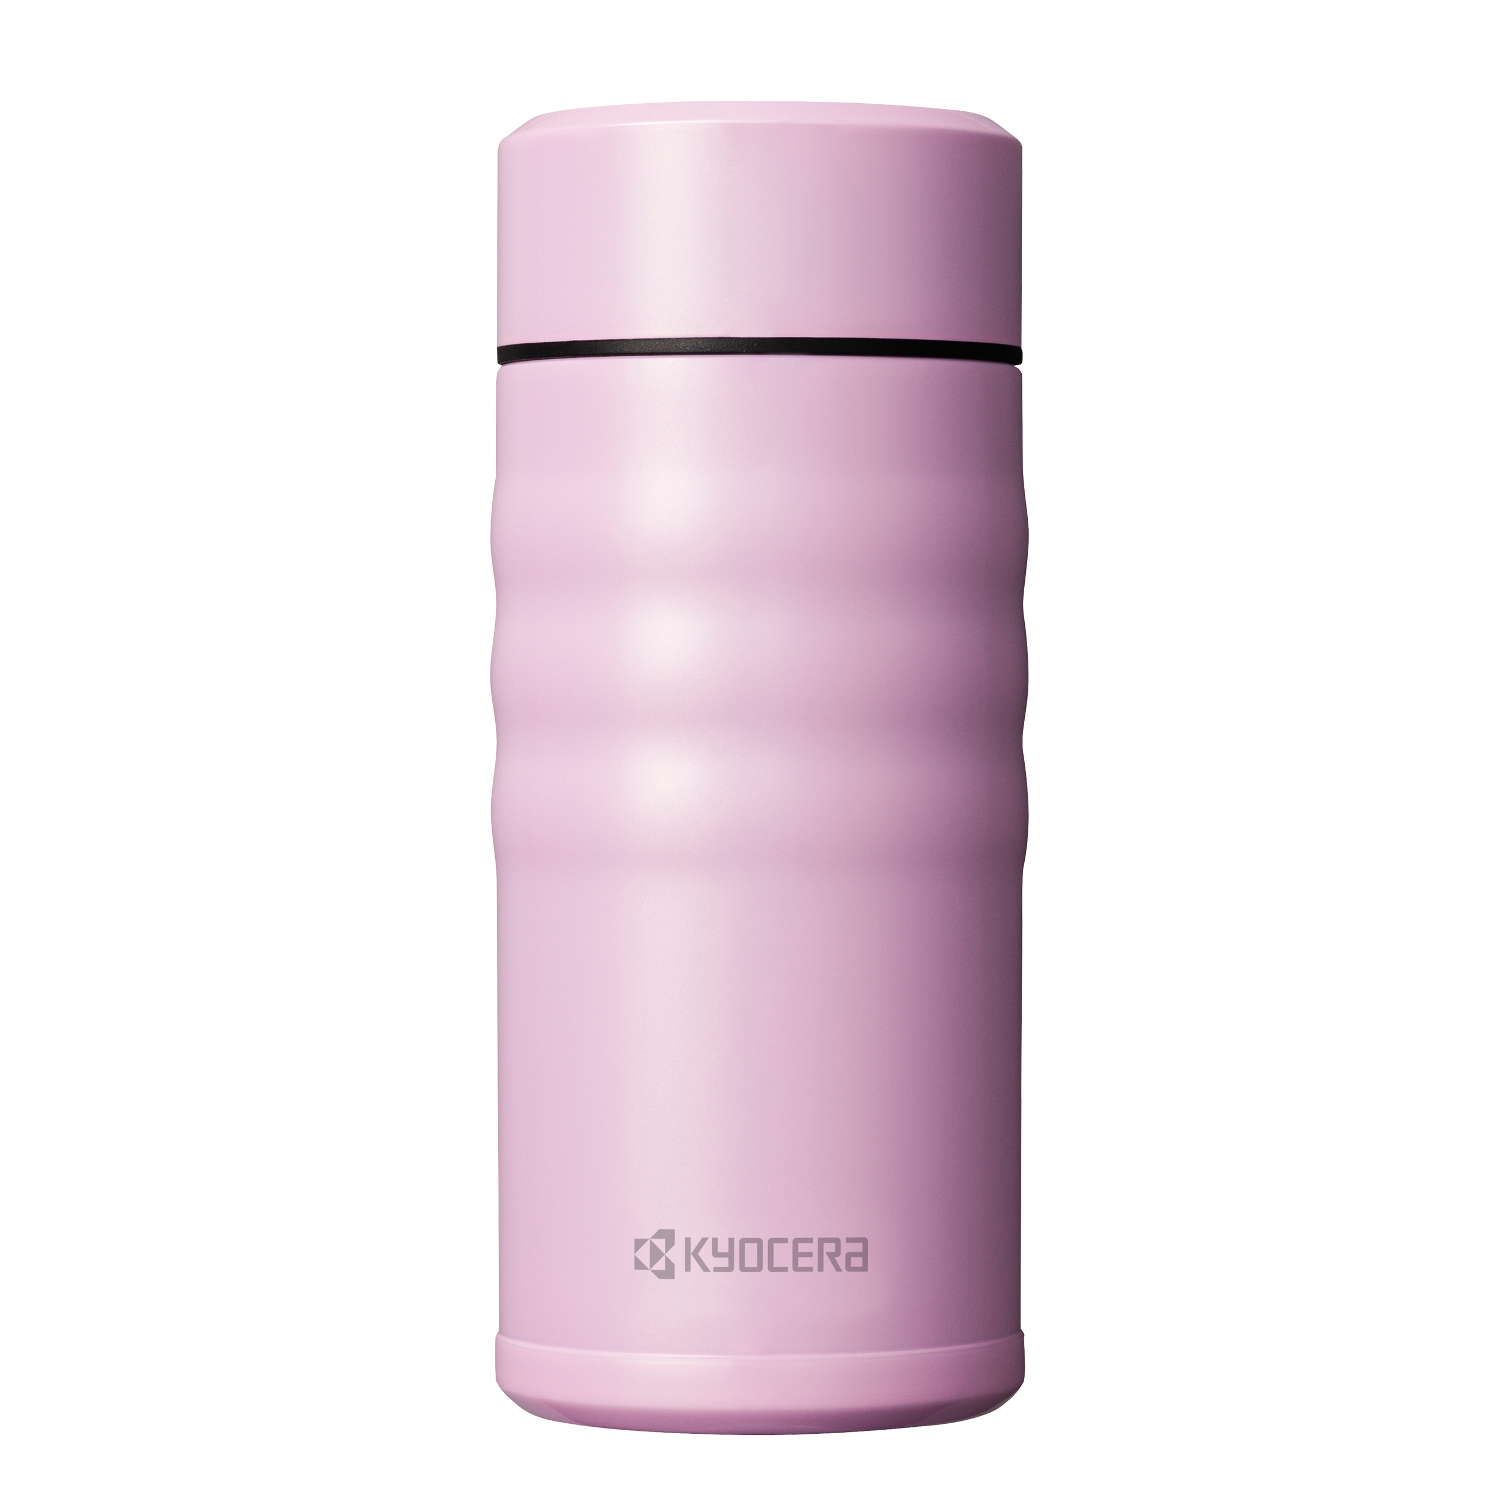 Kyocera Cotton Candy Pink Stainless Steel 12 Ounce Twist Top Insulated Travel Mug